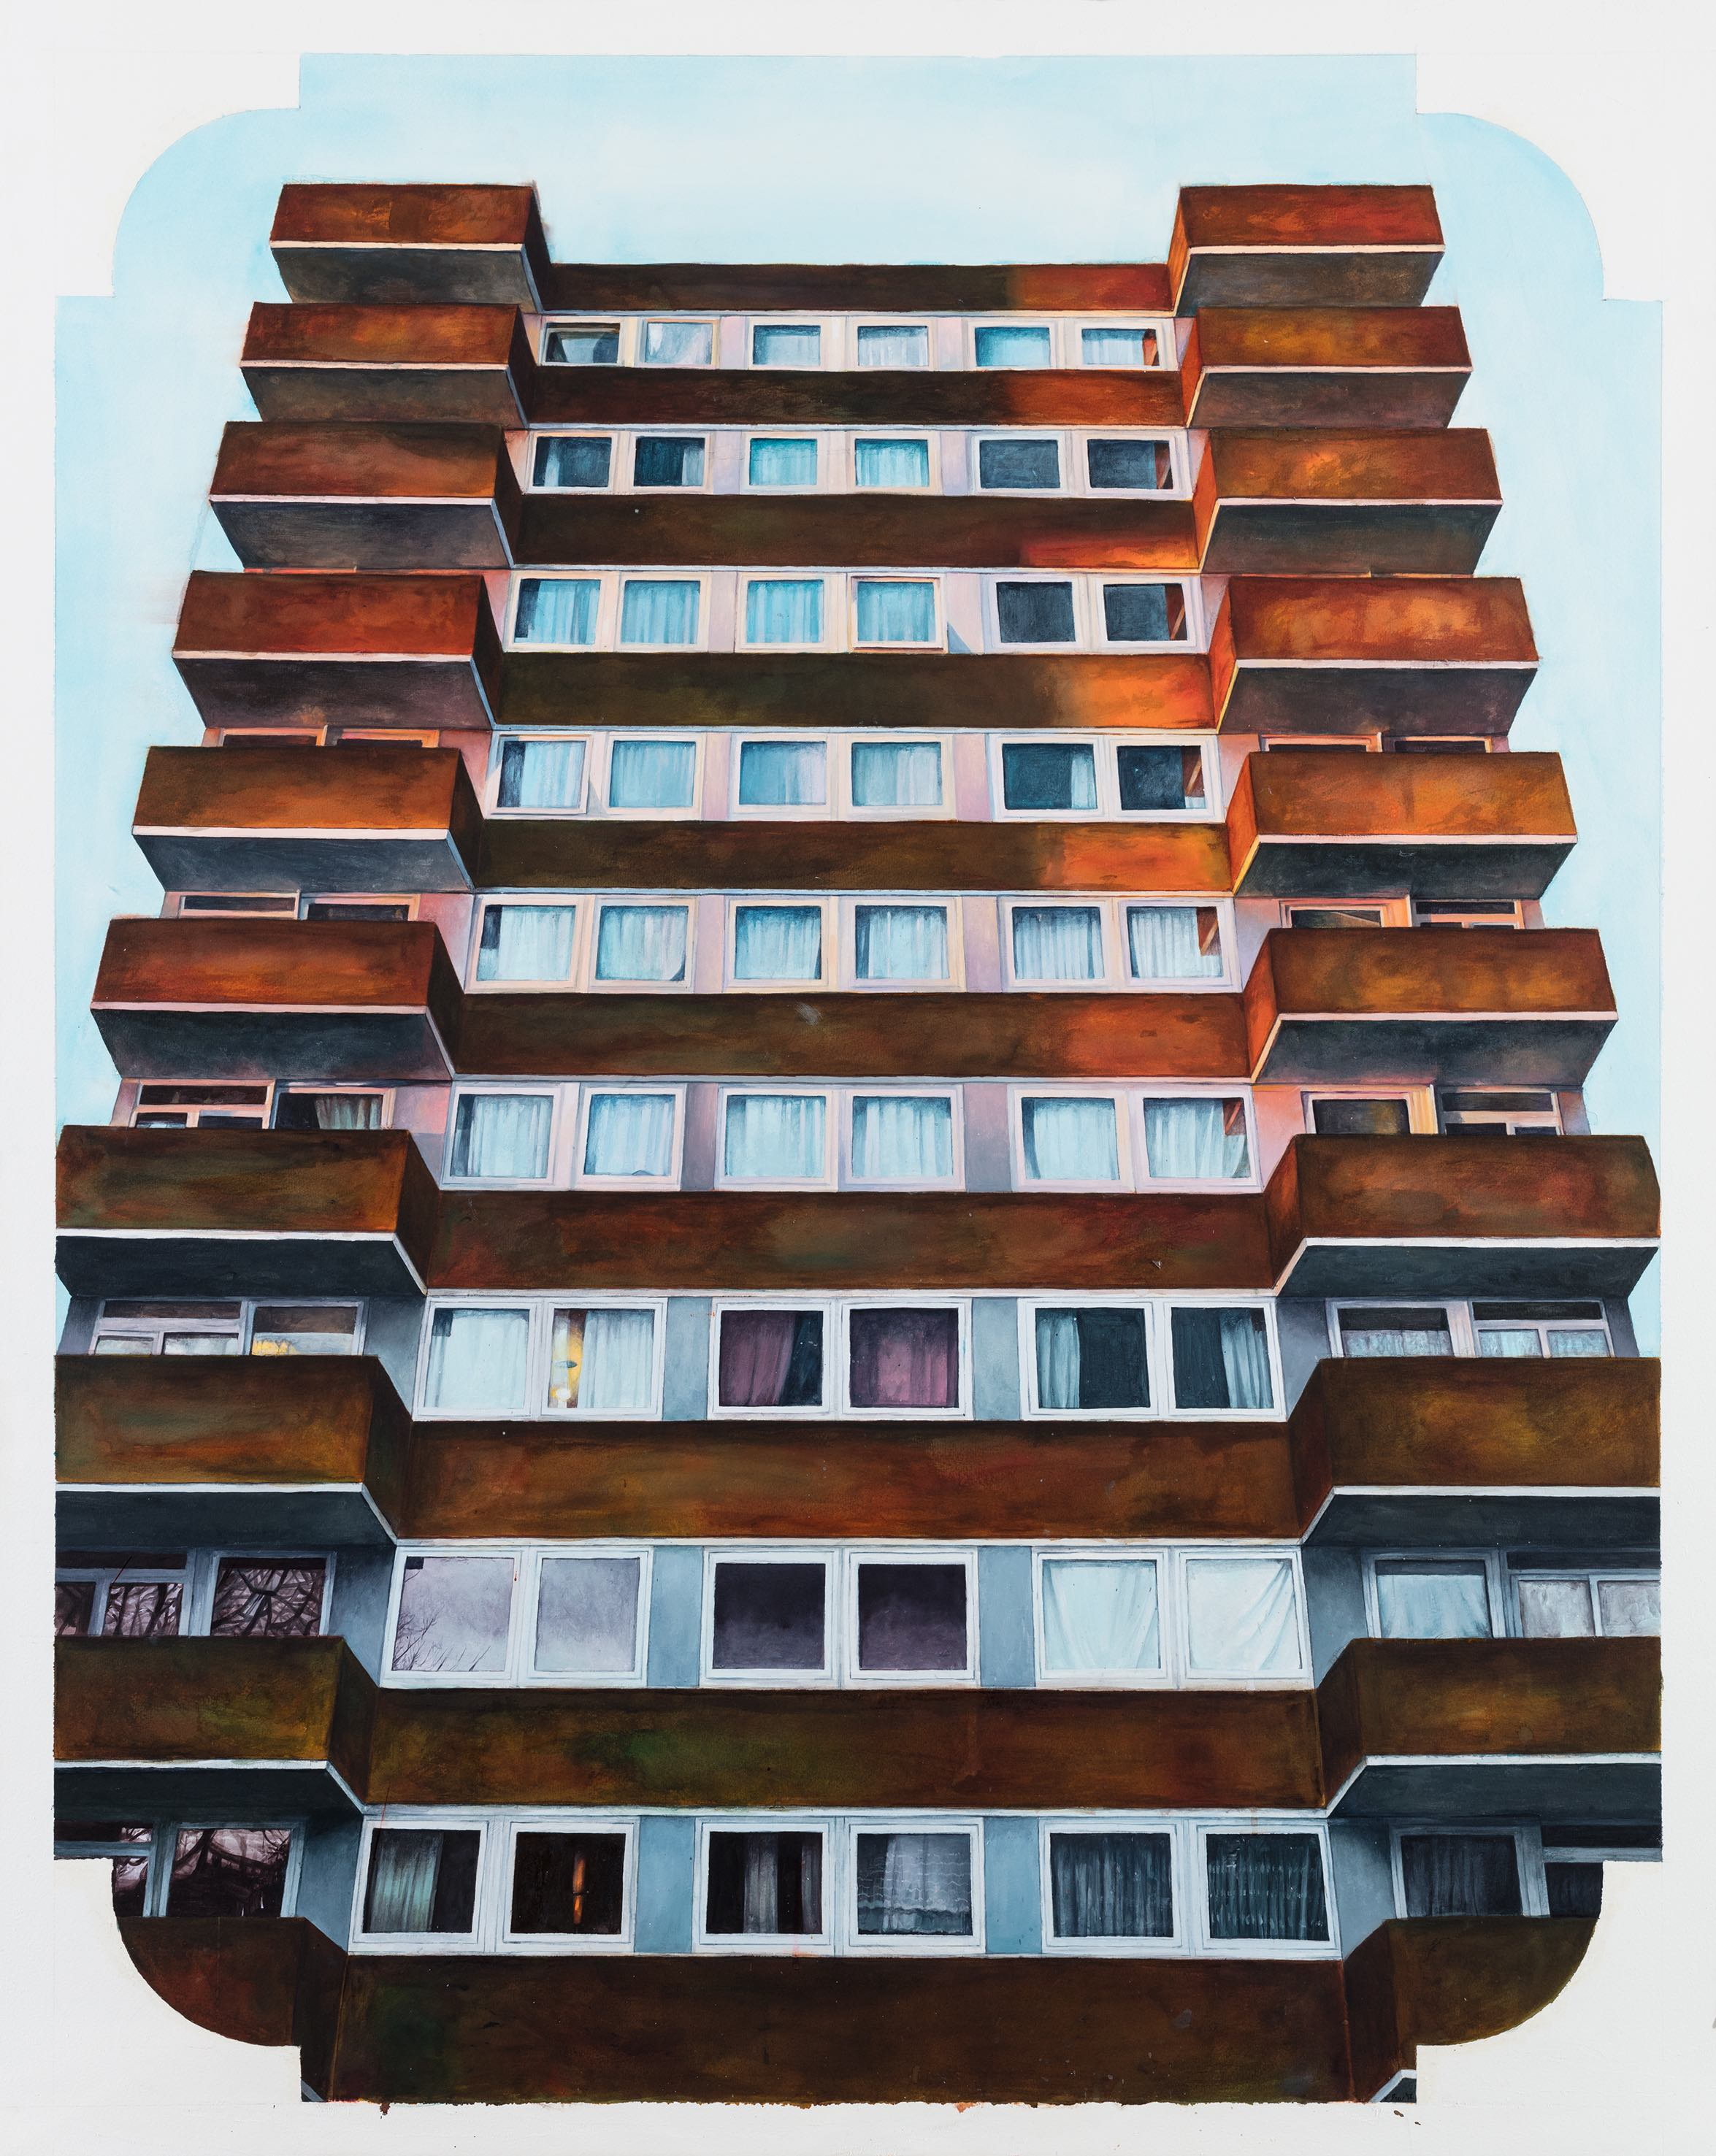 Everyday monuments: A visual homage to the architecture of east London